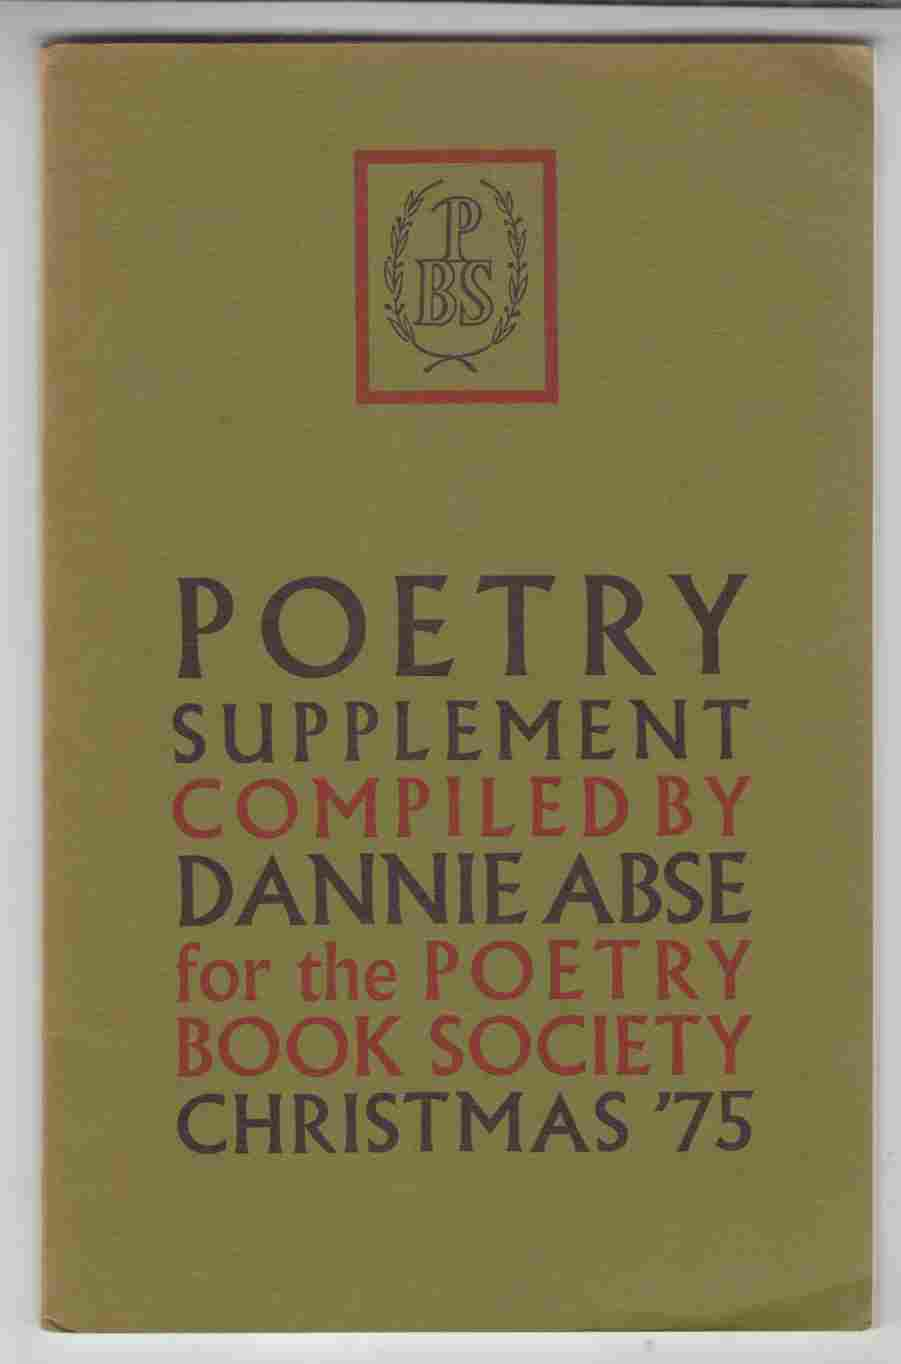 Image for Poetry Supplement Christmas '75